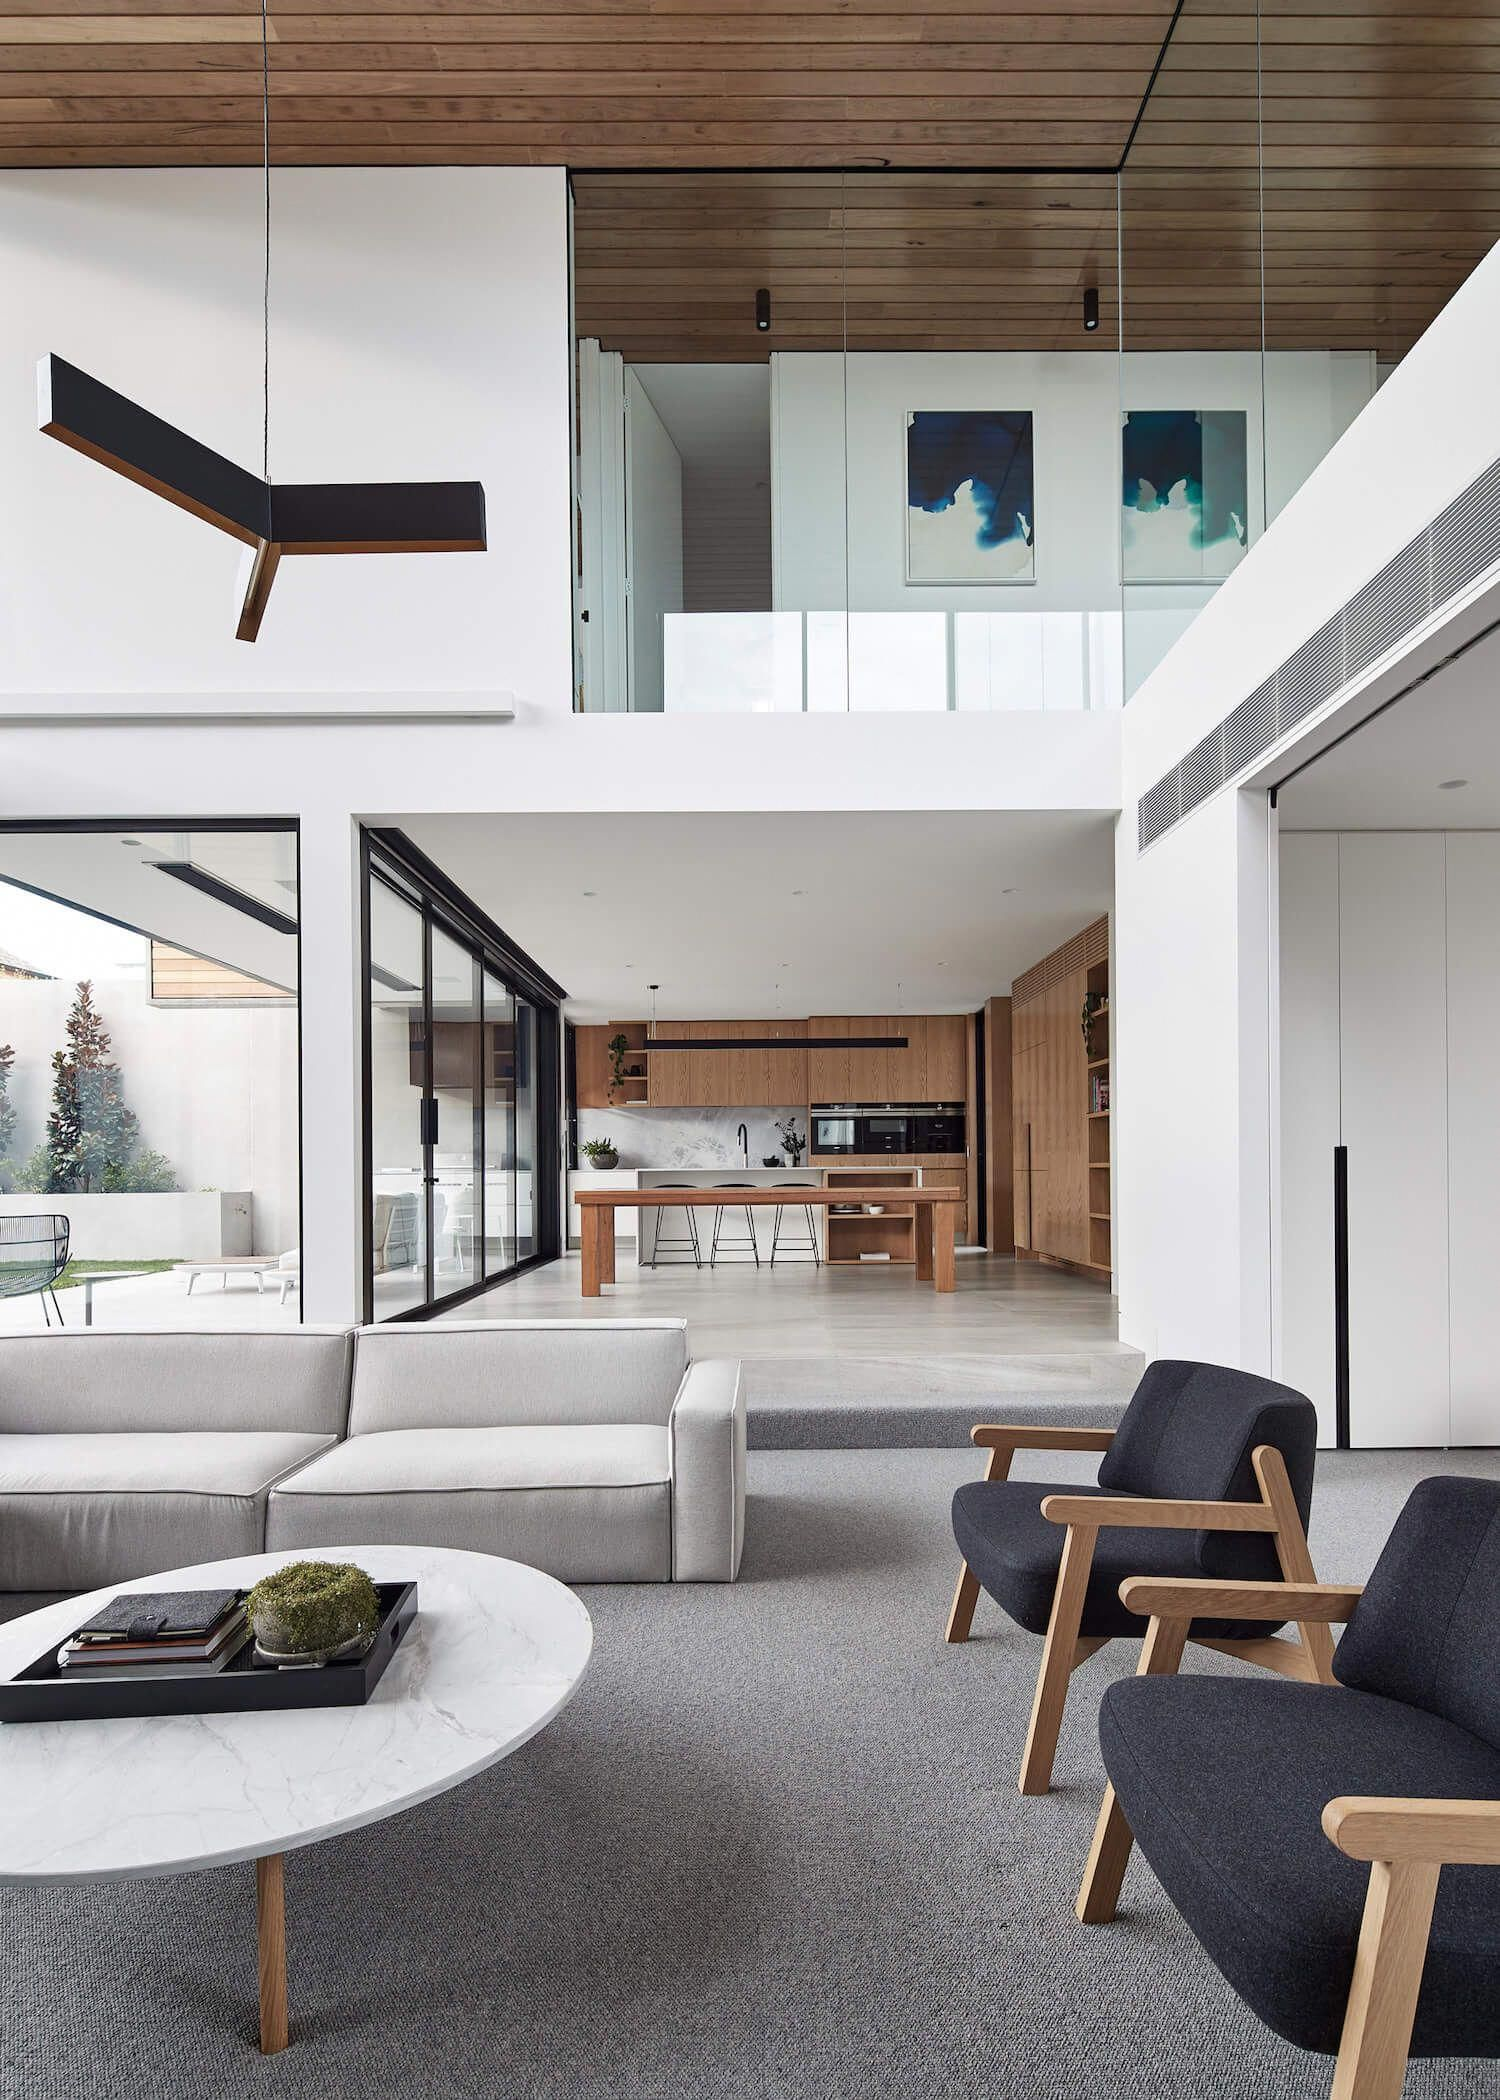 Bloomfield home by fgr architects est living interiordesign also rh pinterest